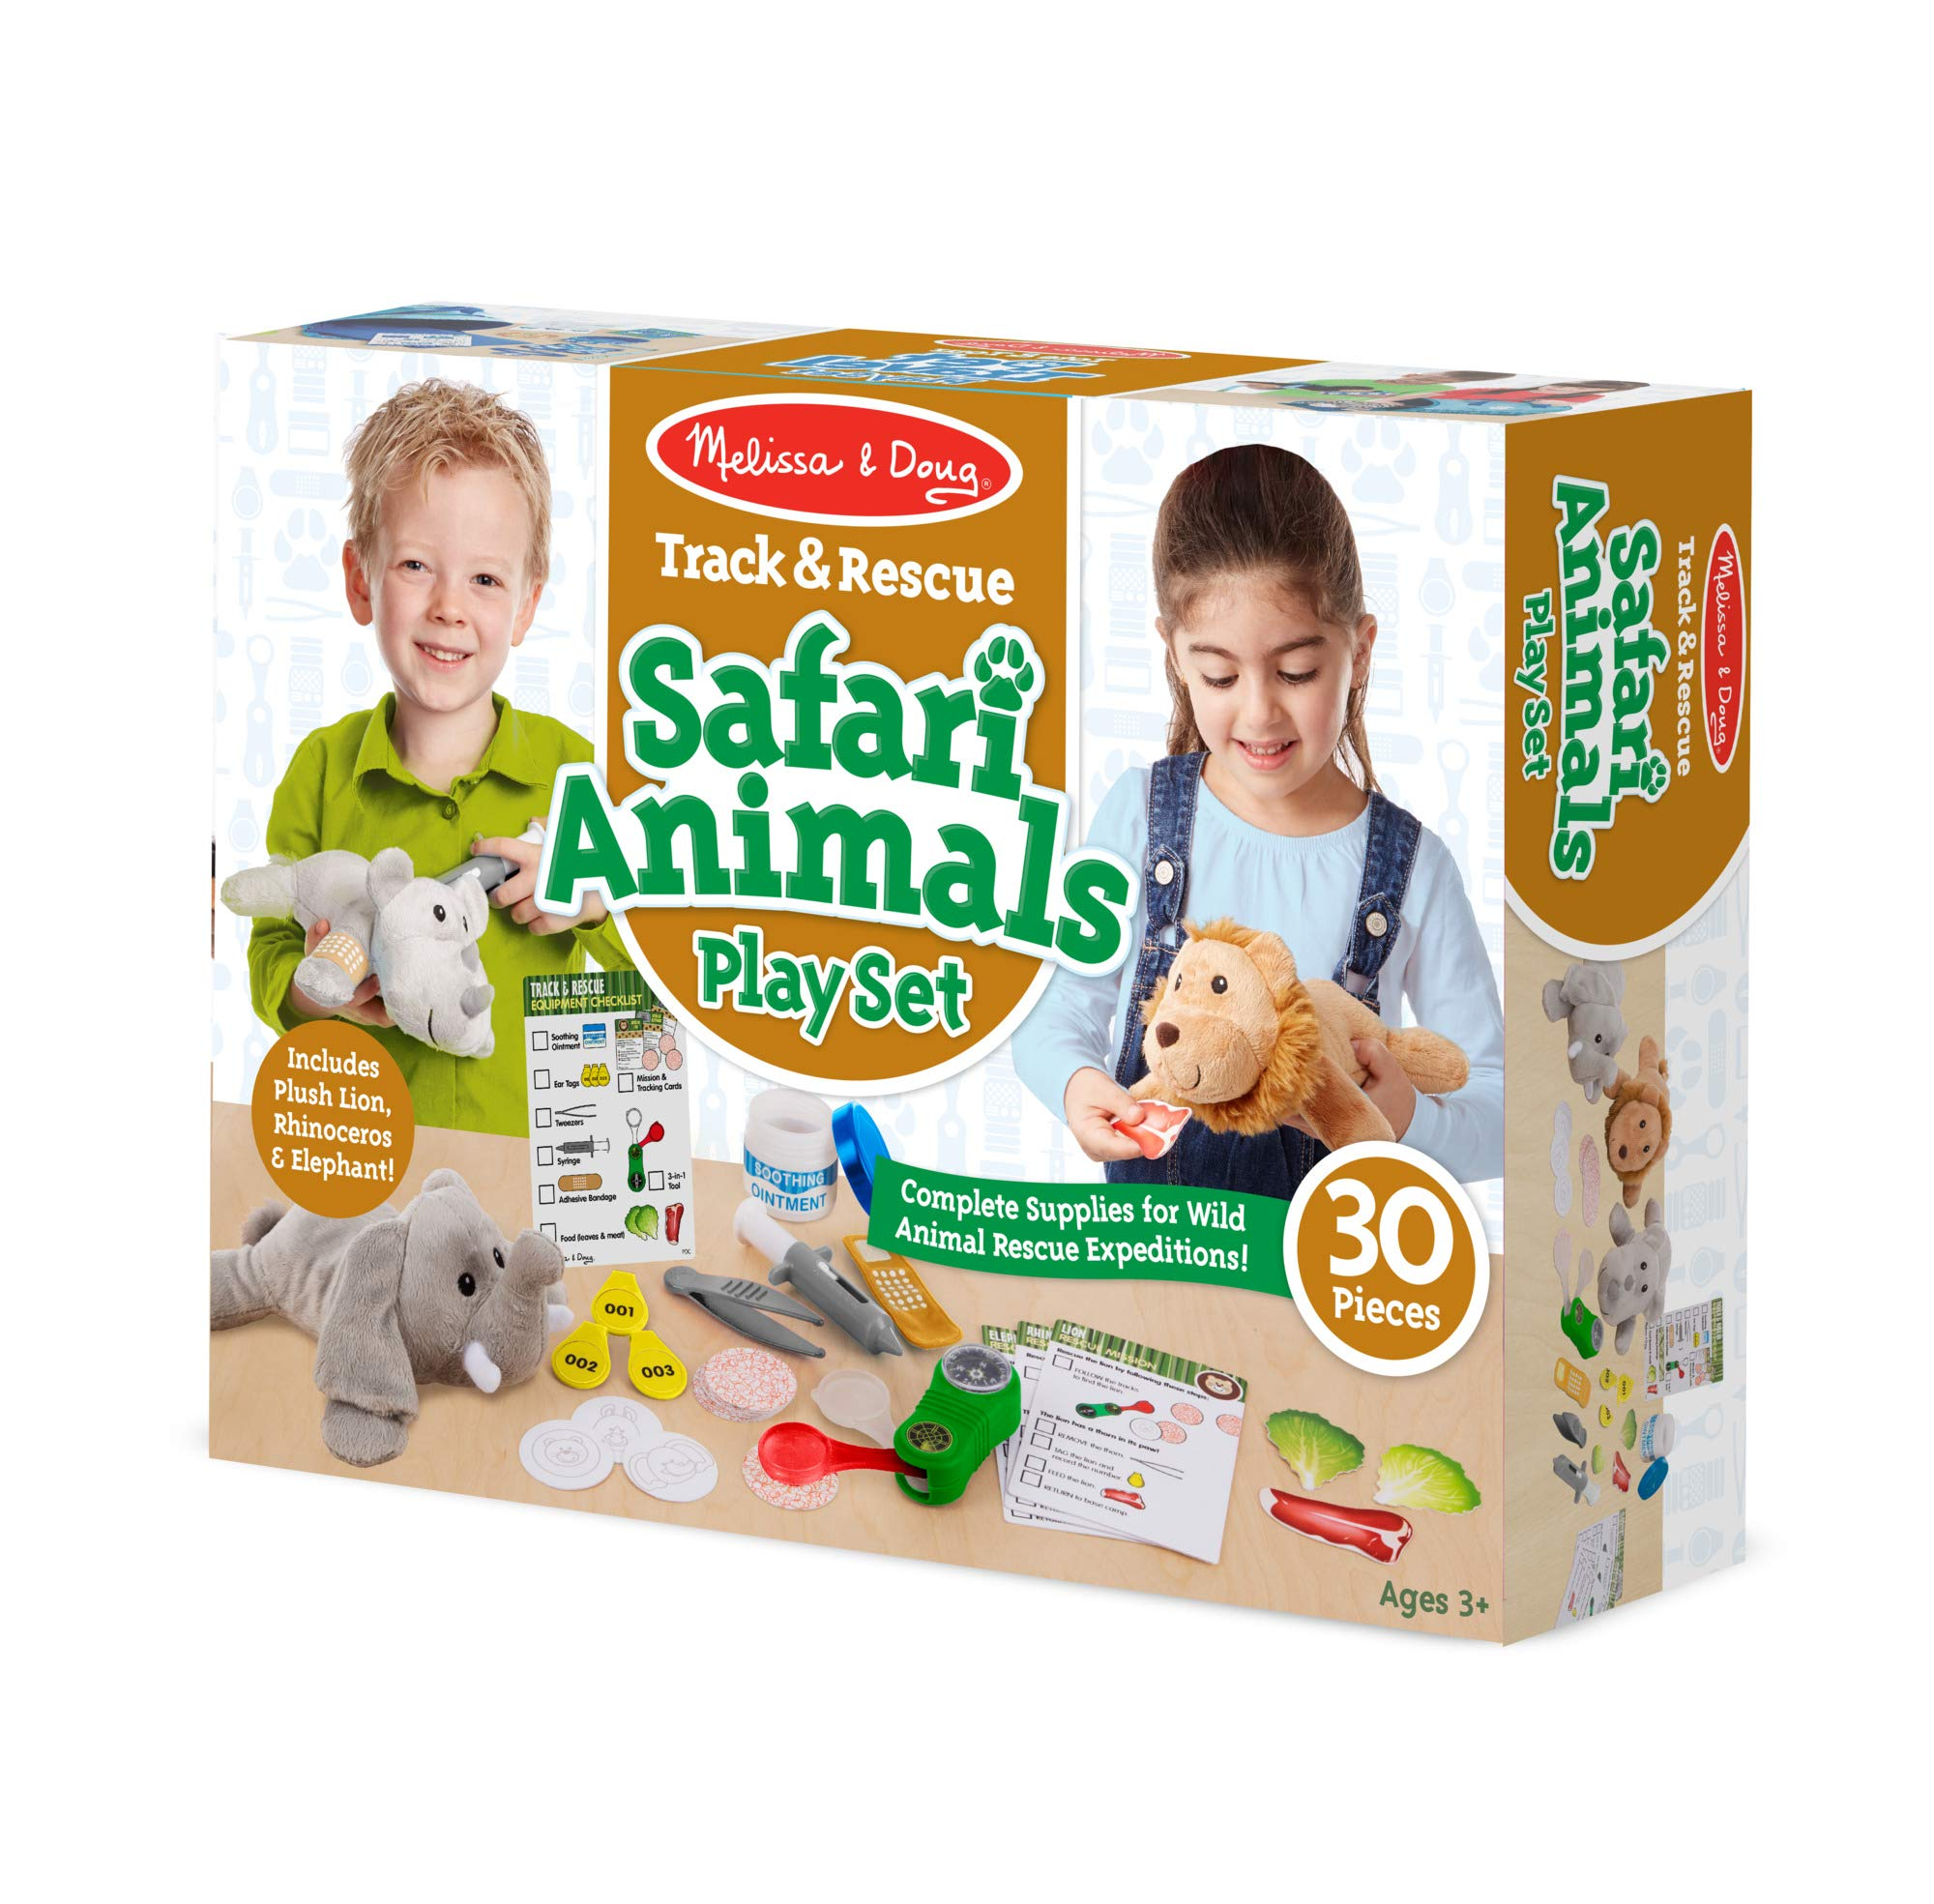 Melissa & Doug Track & Rescue Safari Animals Play Set with 3 Plush Stuffed Animals (30 Pcs), Multicolor by Melissa & Doug